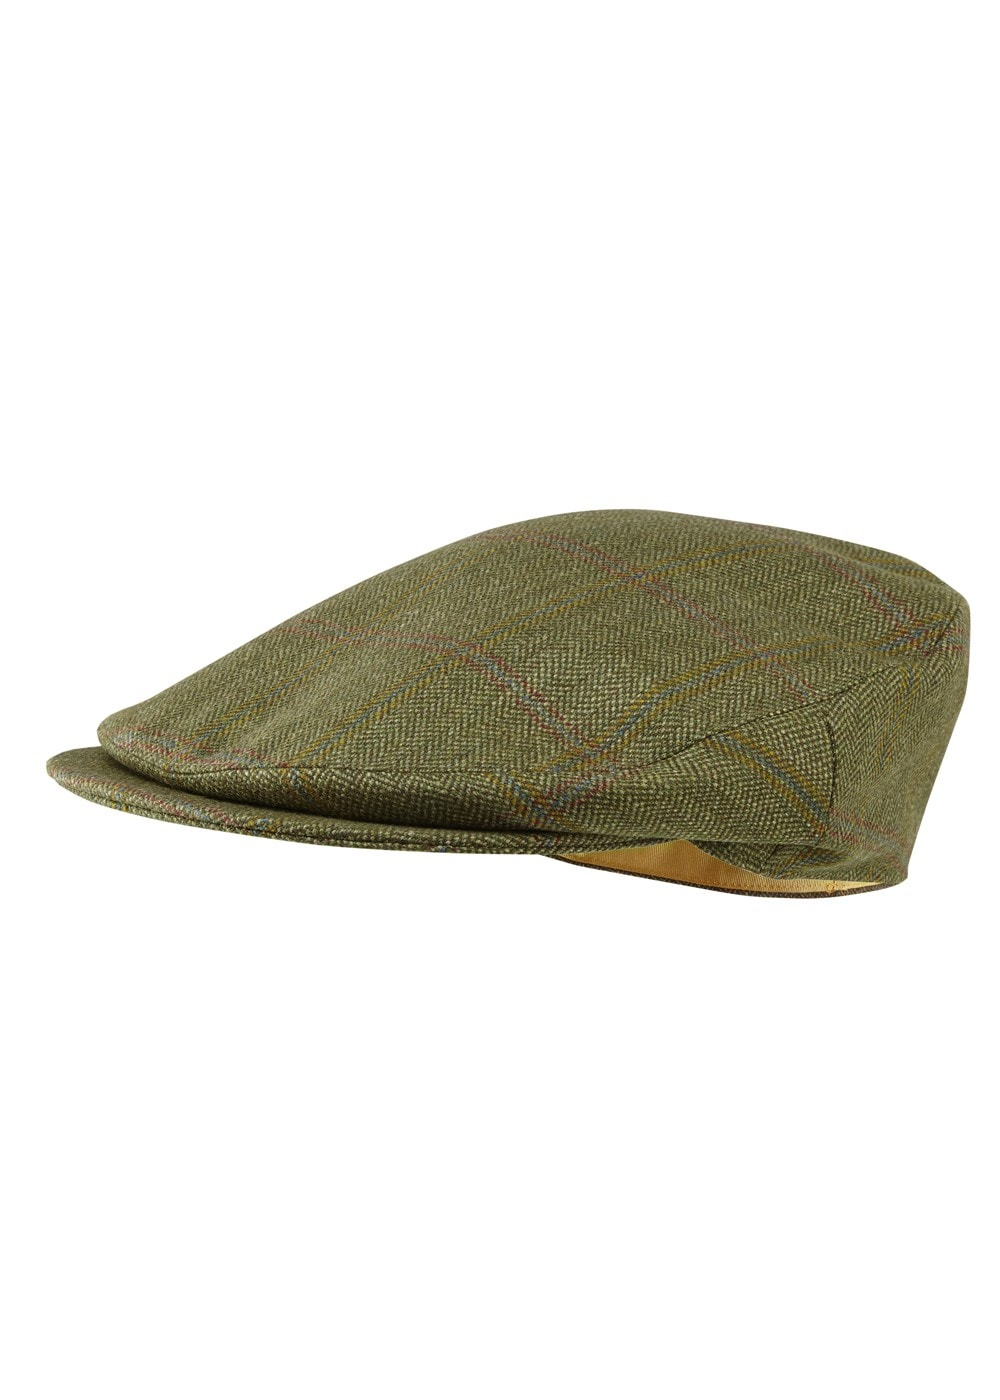 137c01ea Schoffel Countryman Tweed Cap - Mens from A Hume UK